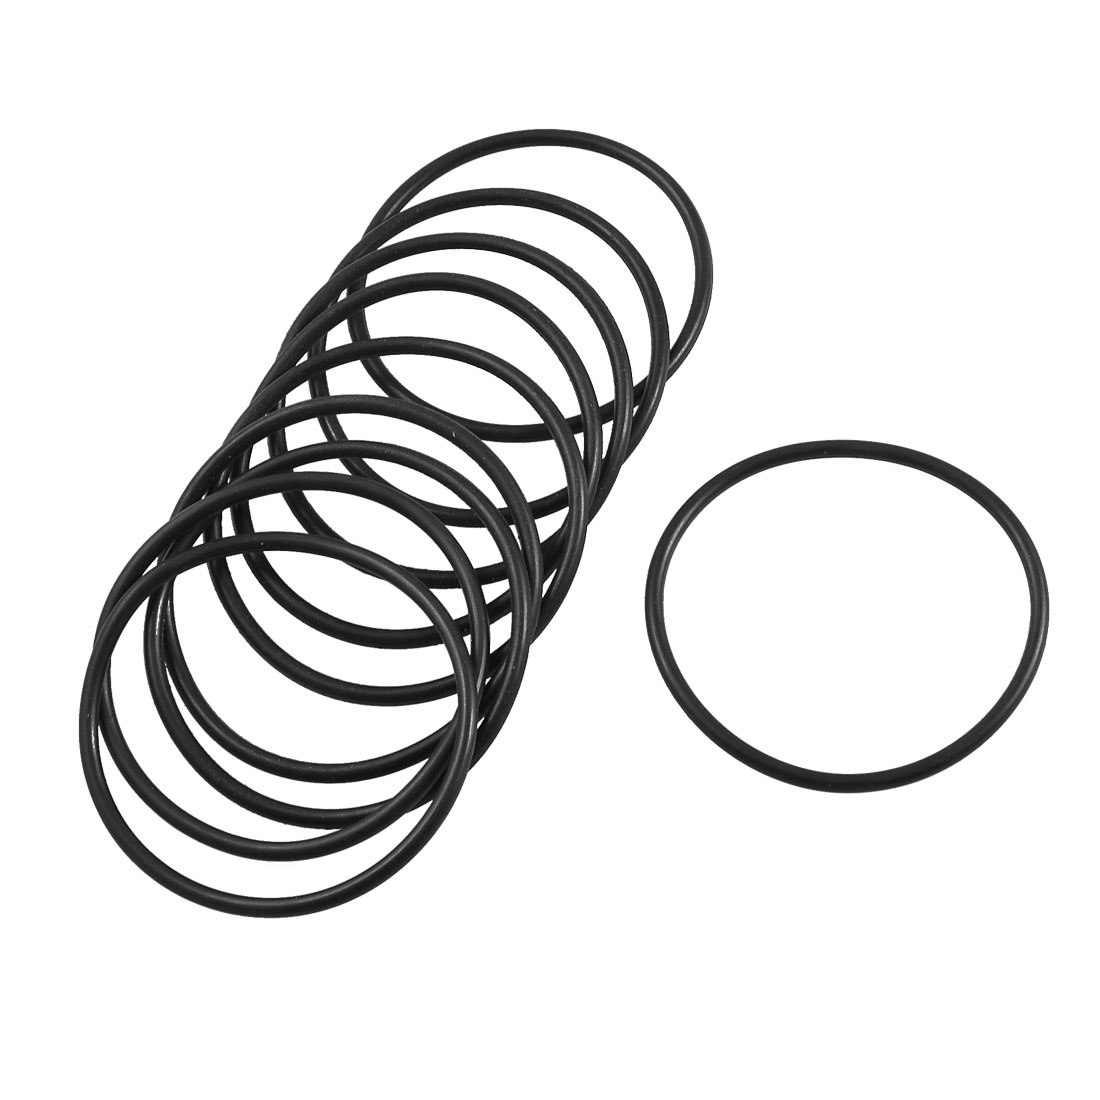 10 Pcs 62mm x 55.8mm x 3.1mm Mechanical Flexible Rubber O Ring Oil Seal Gaskets